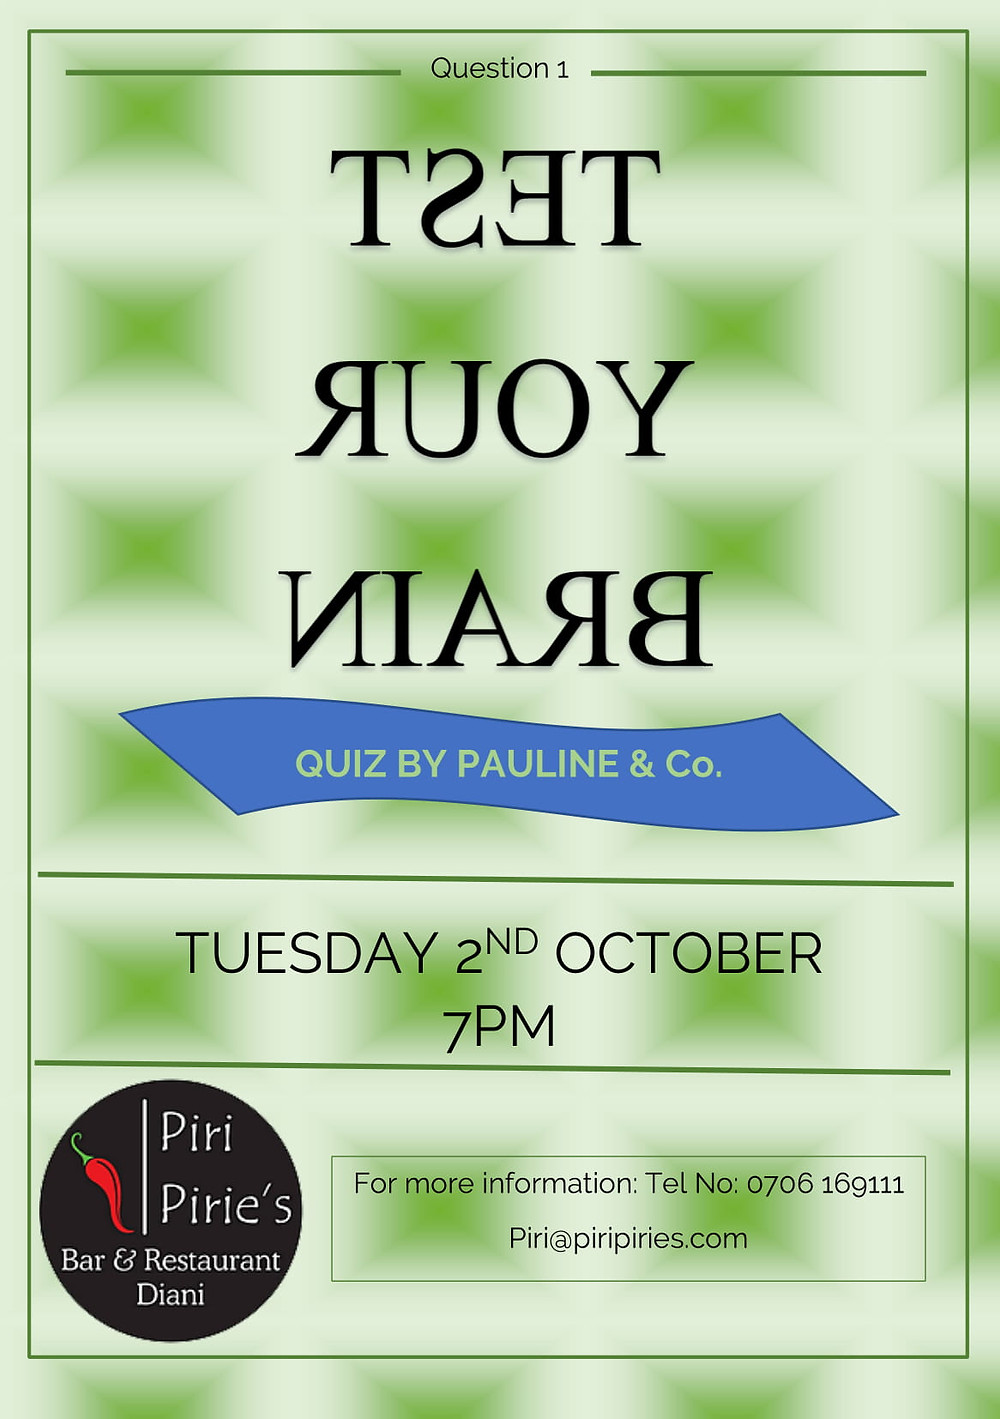 2nd Oct Quiz night @ Piri Pirie's By Pauline and Co